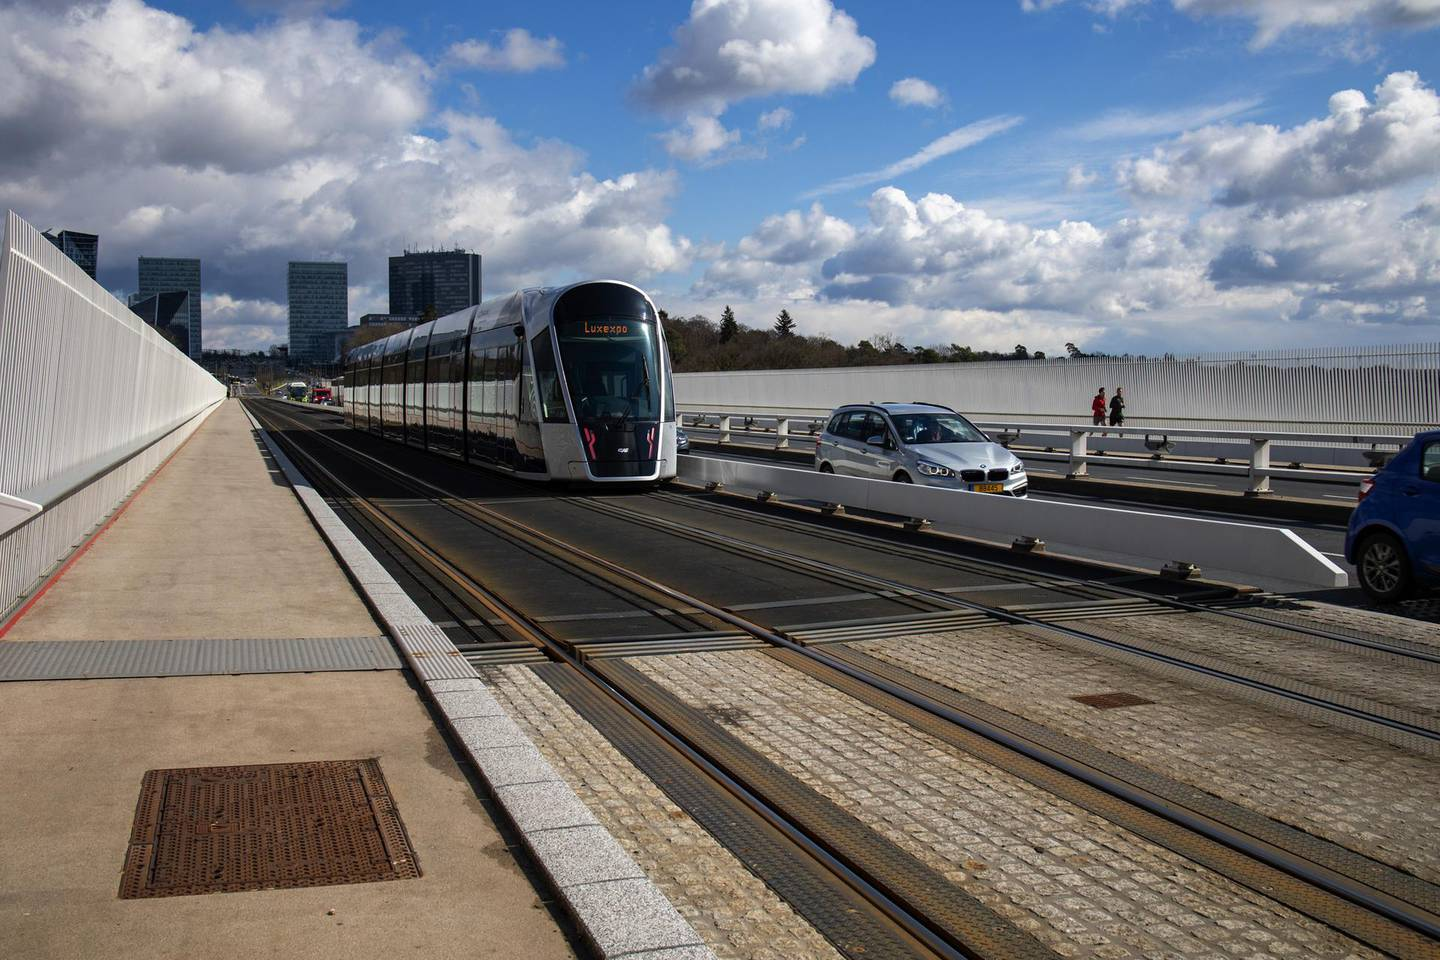 A tram and automobiles travel near skyscrapers in the financial district in Luxembourg, on Monday, March 15, 2021. More than 60 financial firms have established operations in the Grand Duchy due to Brexit, according to Nicolas Mackel, the head of Luxembourg for Finance. Photographer: Olivier Matthys/Bloomberg